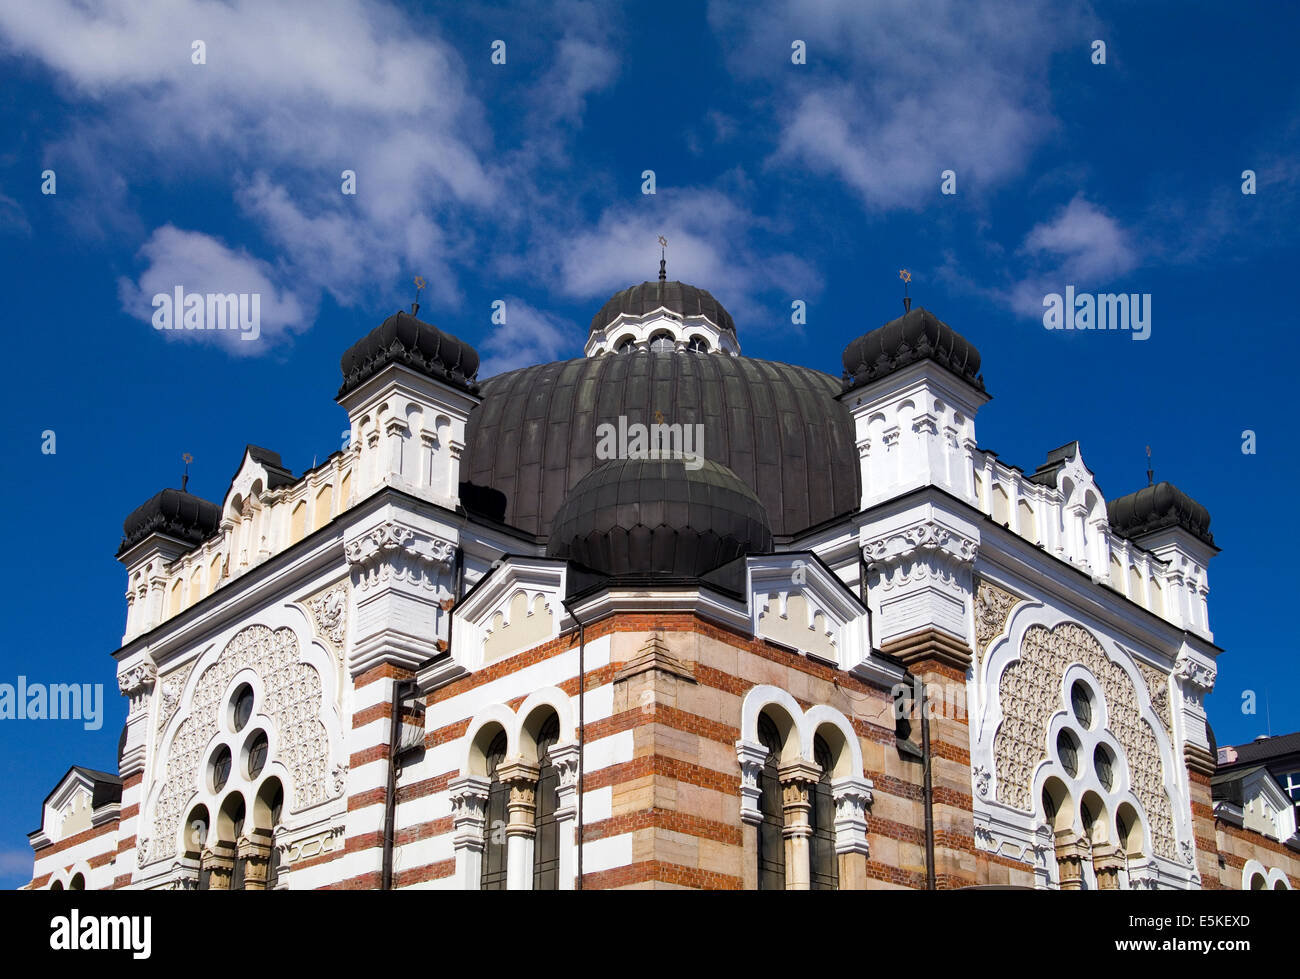 The Central Synagogue in Sofia, Bulgaria - Stock Image